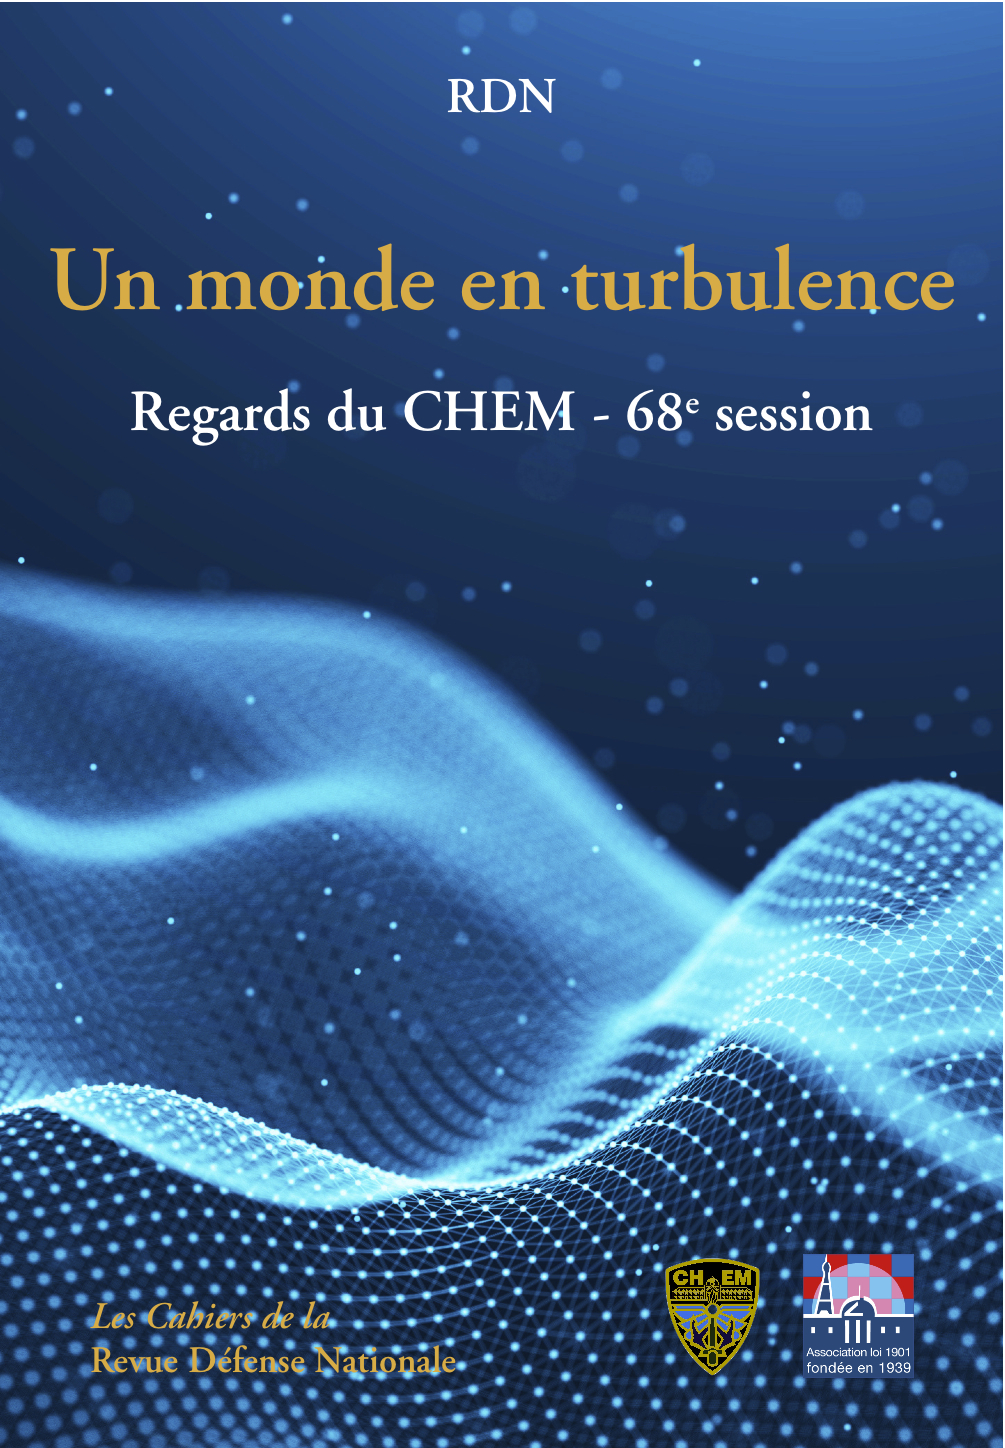 Un monde en turbulence - Regards du CHEM - 68e session